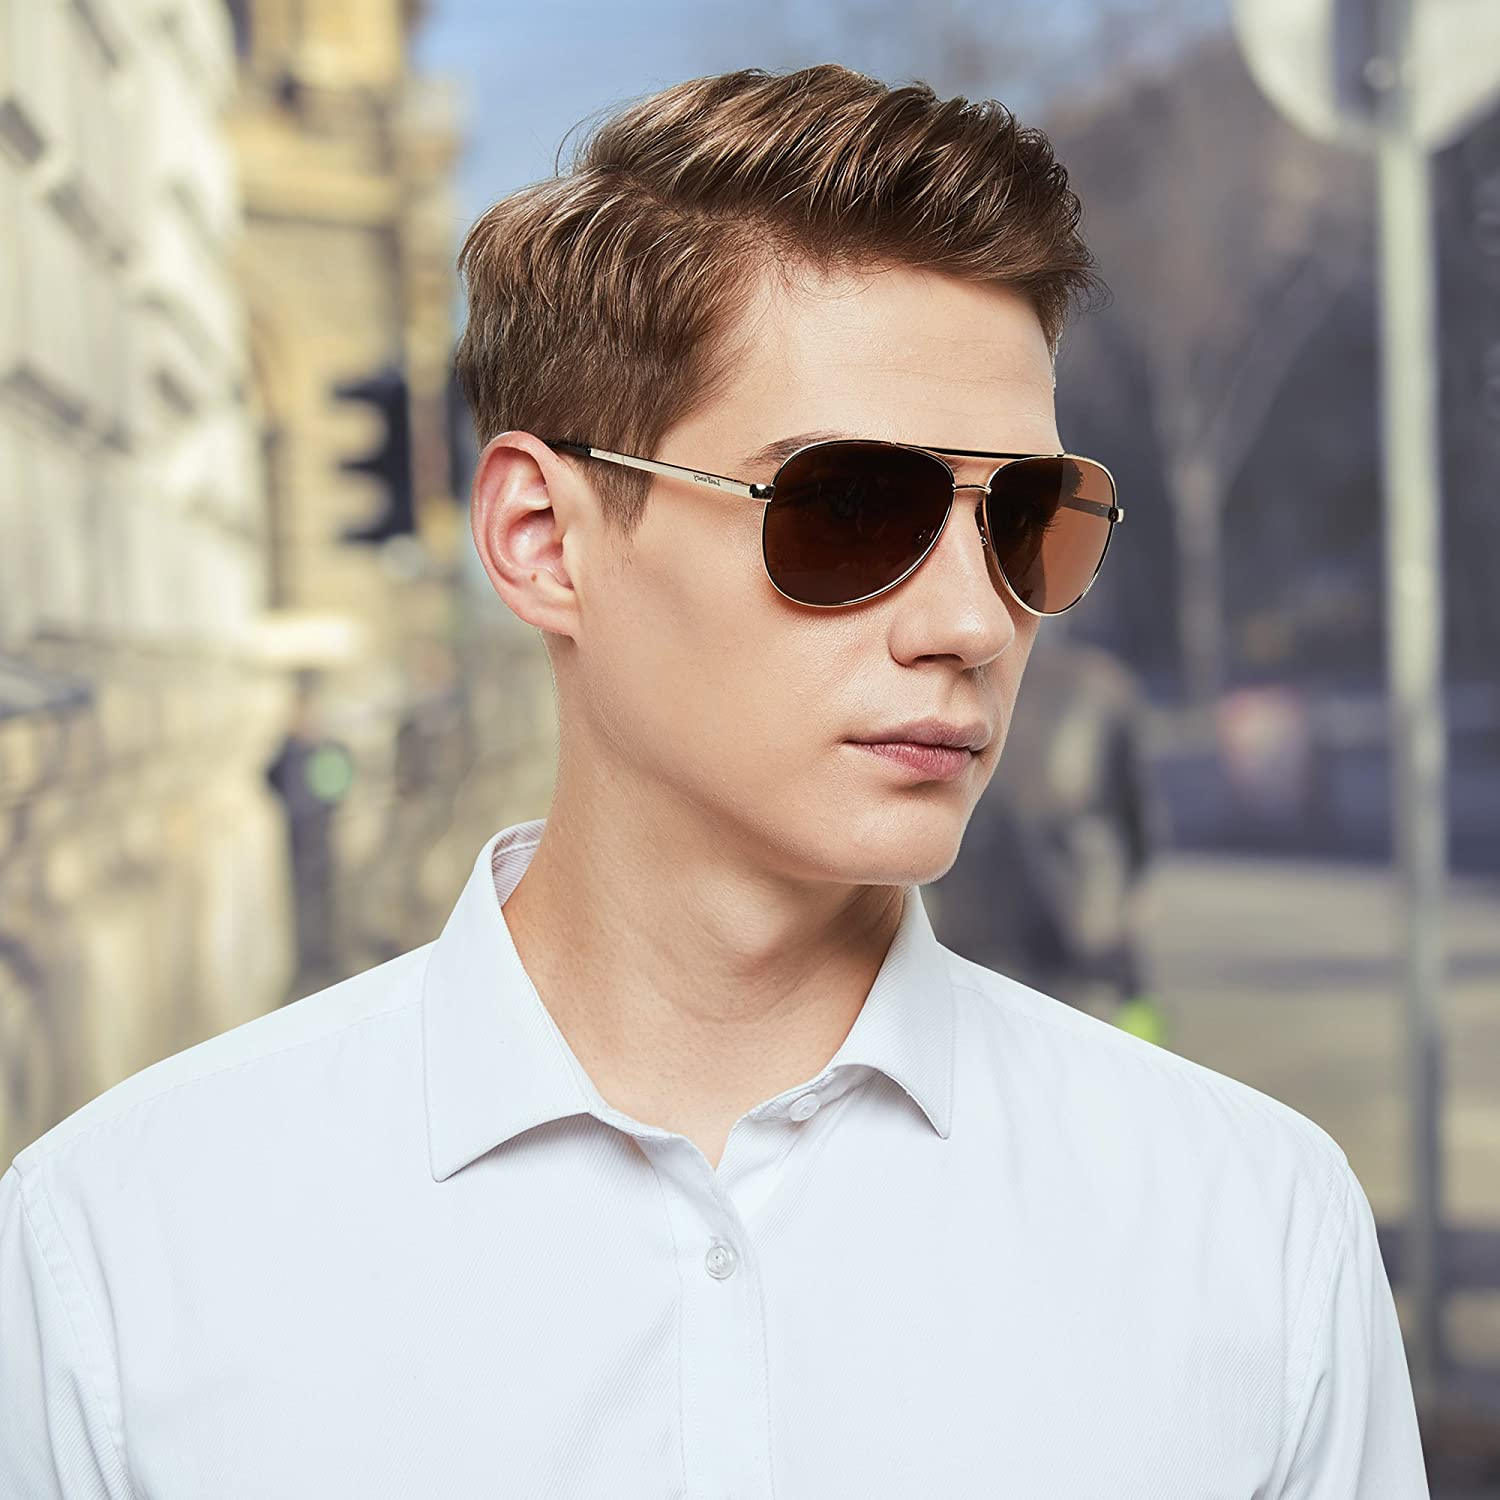 Lightweight For Protection Lotfancy StyleUltra MenUv400 With Classic Polarized Aviator Case61mm Sunglasses WYH9DeE2I